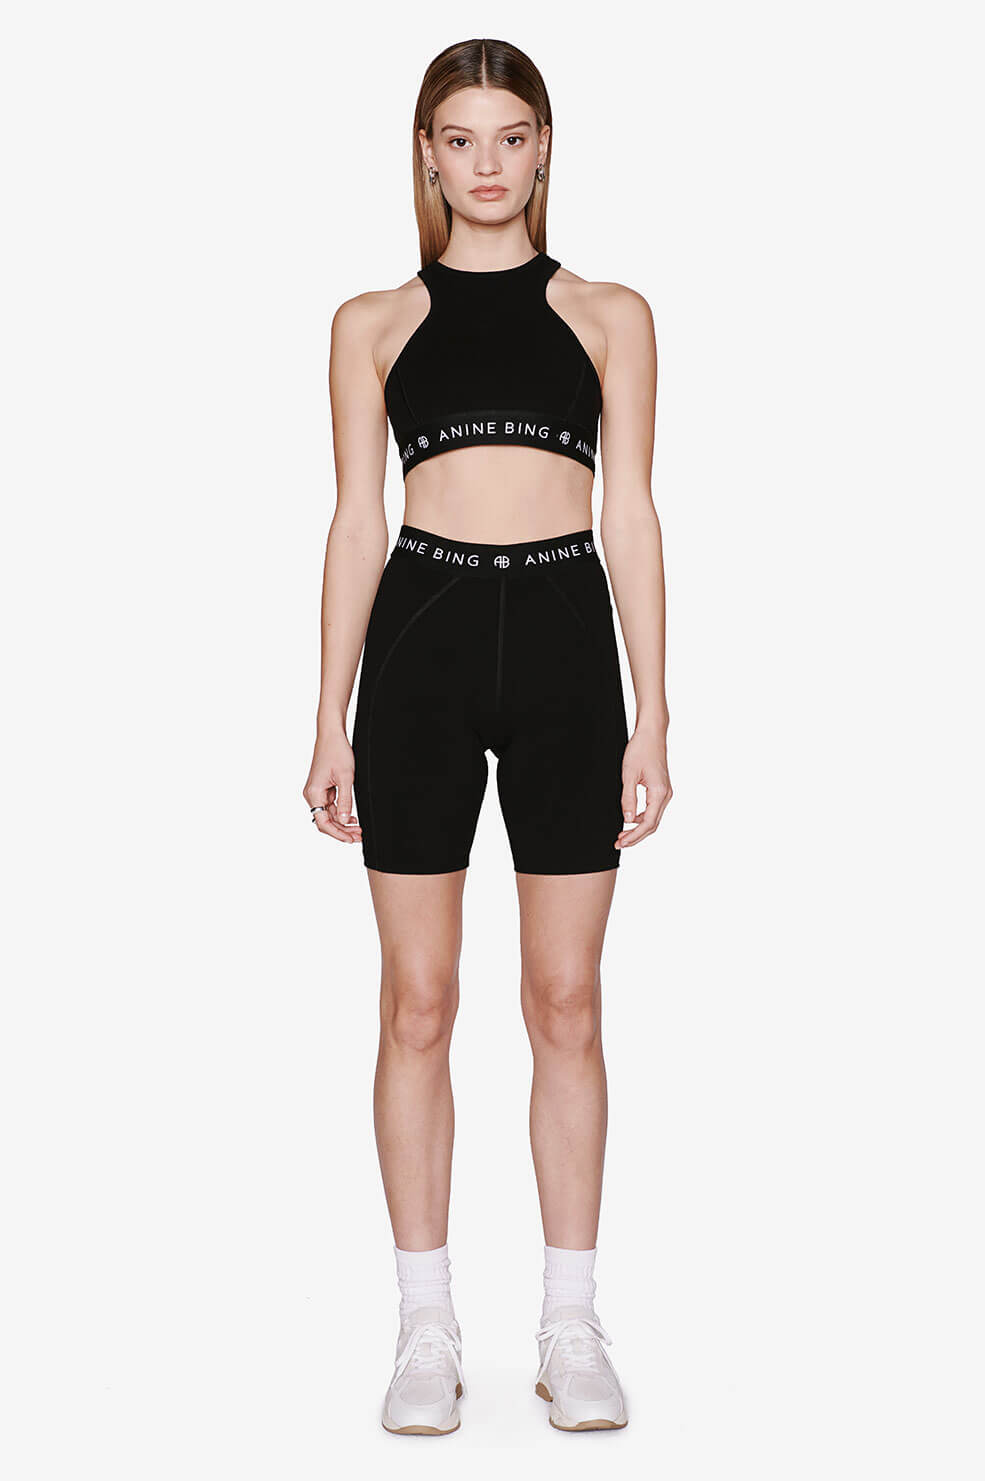 ANINE BING Carly Bike Short - Black